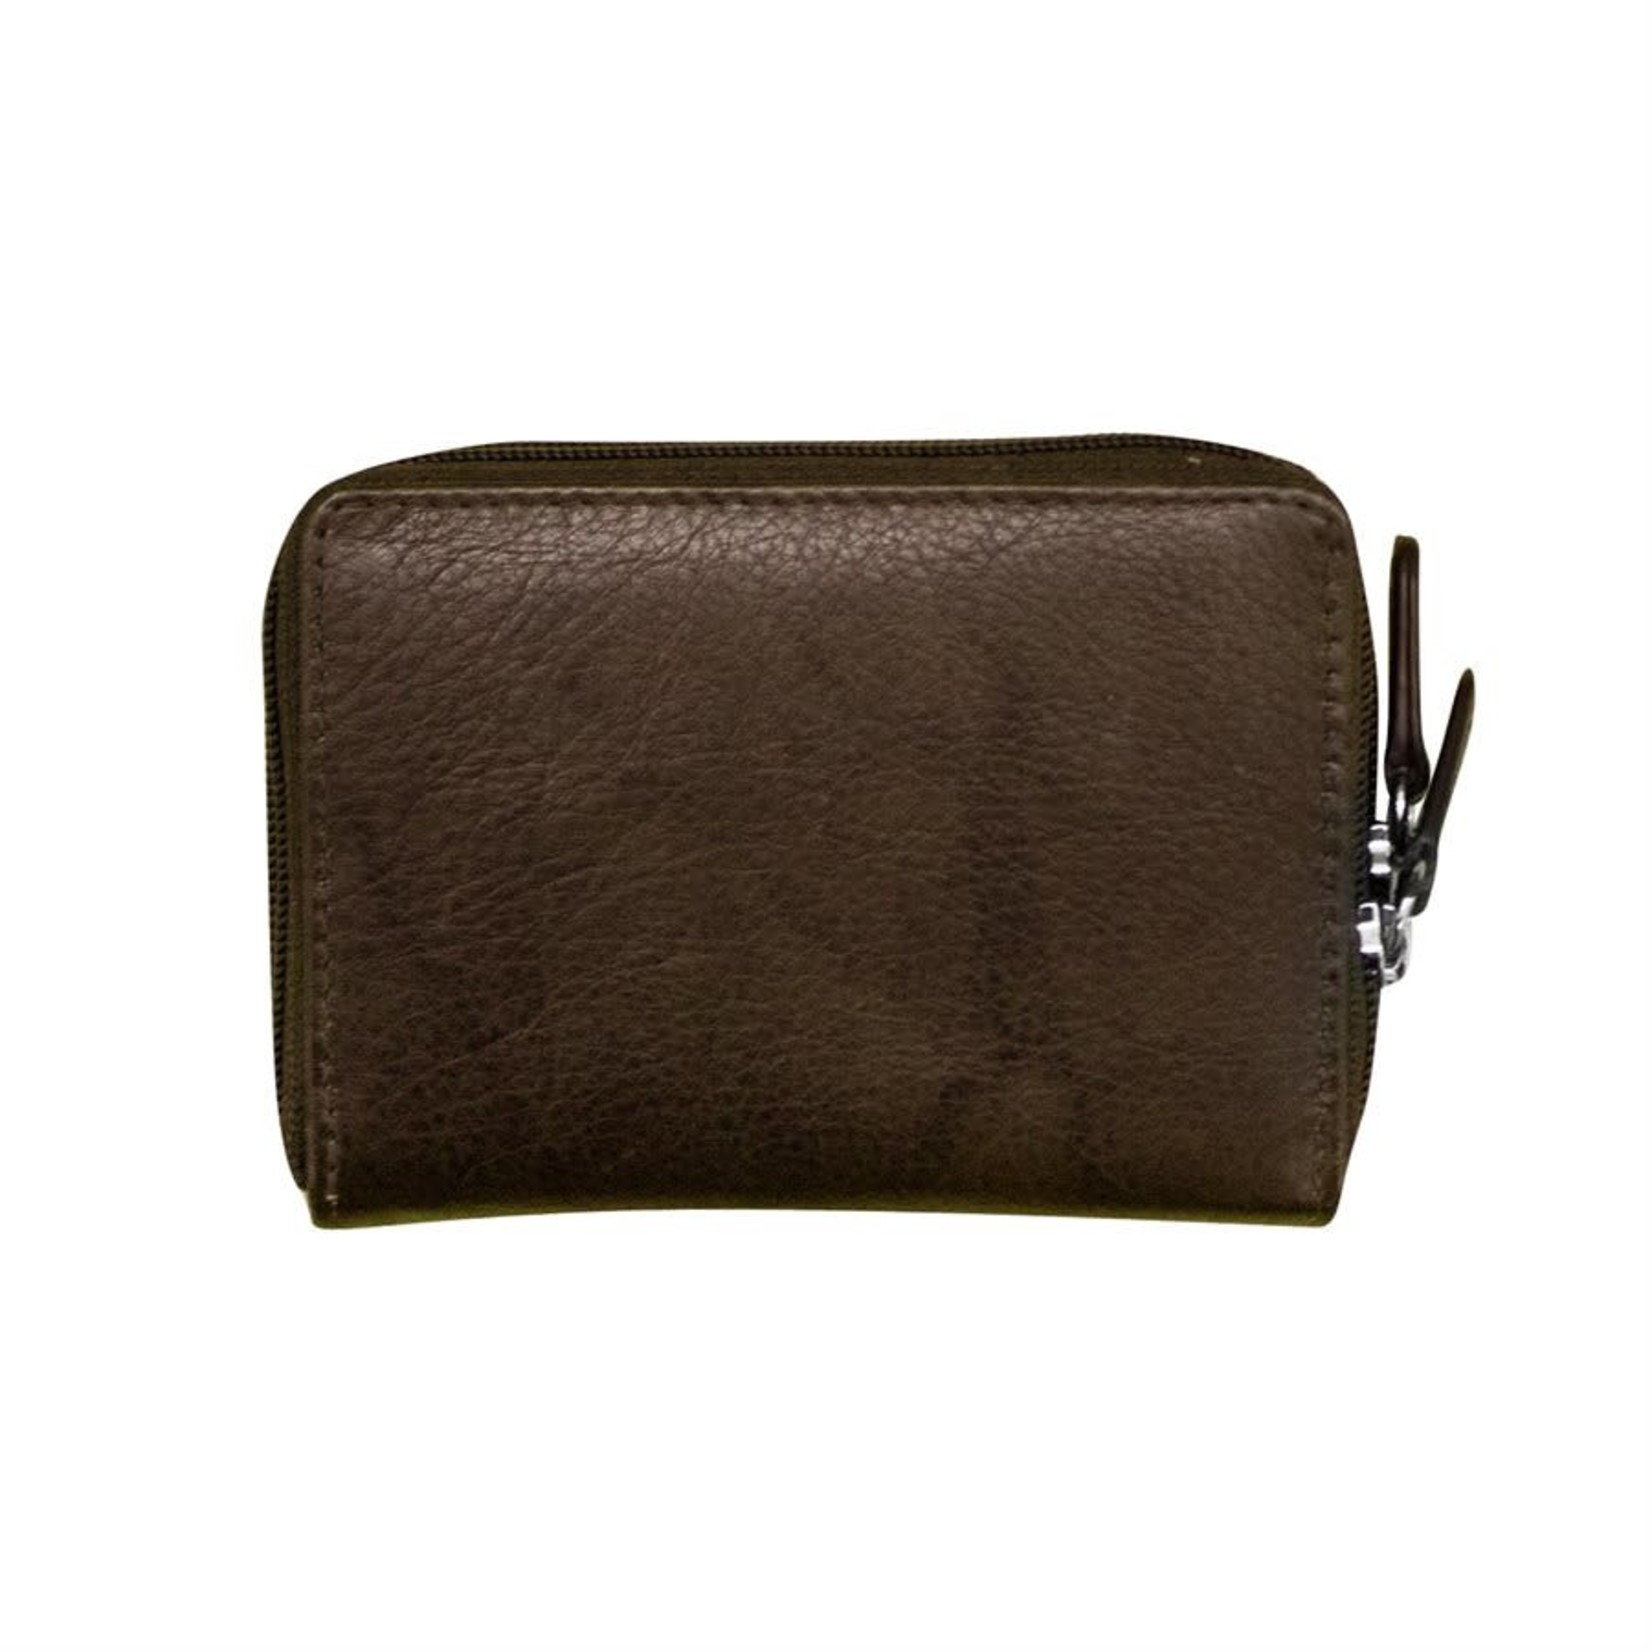 Leather Handbags and Accessories 6714 Walnut - RFID Double Zip Accordion Card Holder